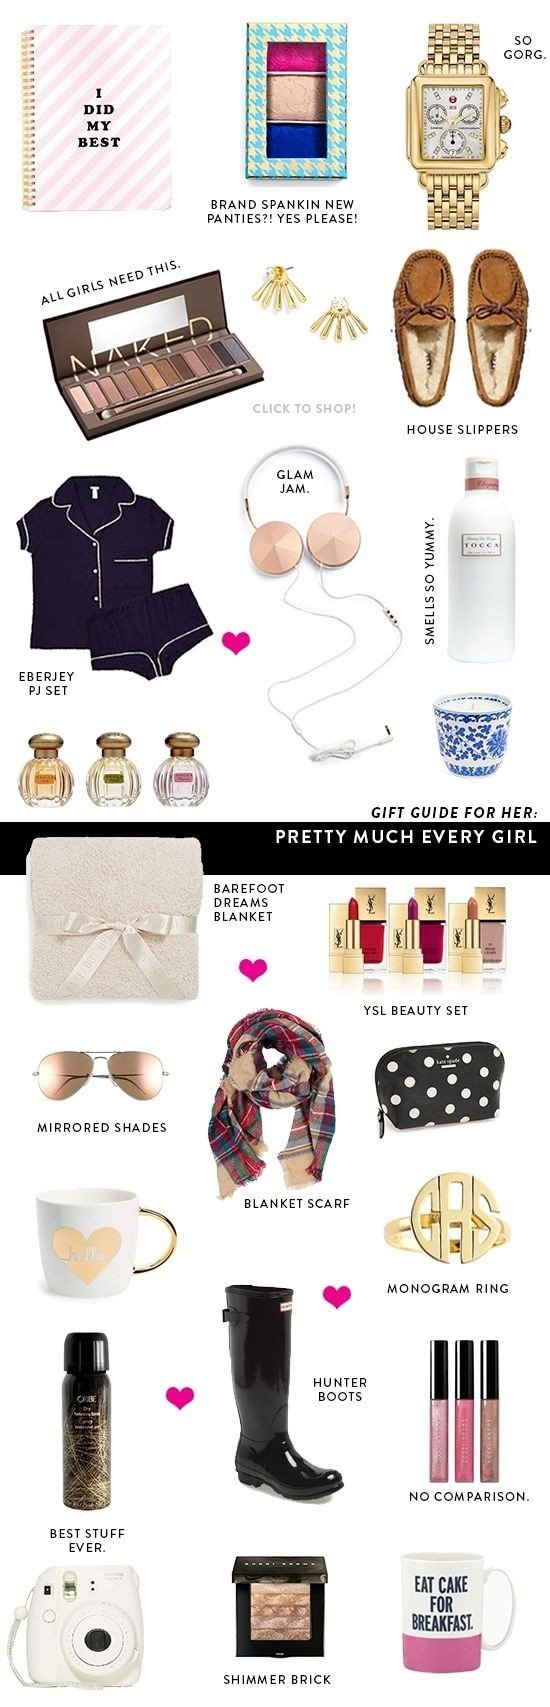 10 Beautiful College Student Christmas Gift Ideas